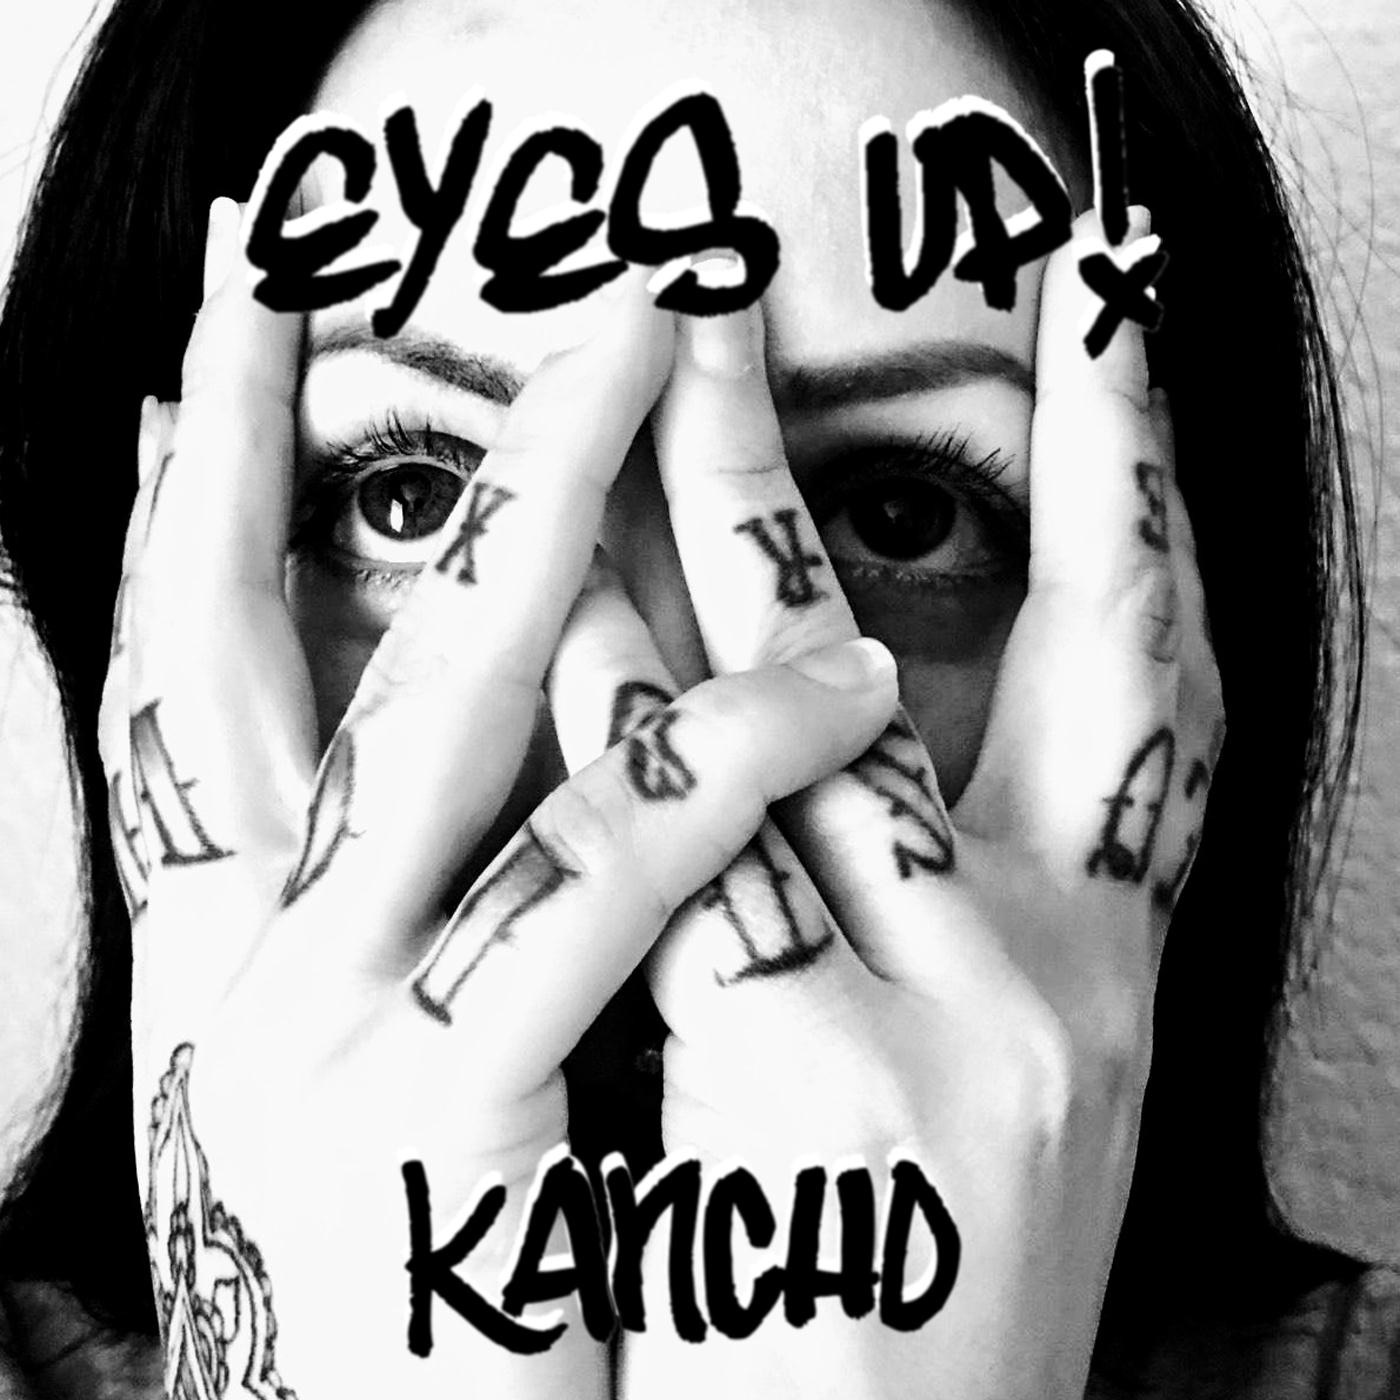 Eyes Up - Kancho (2018)